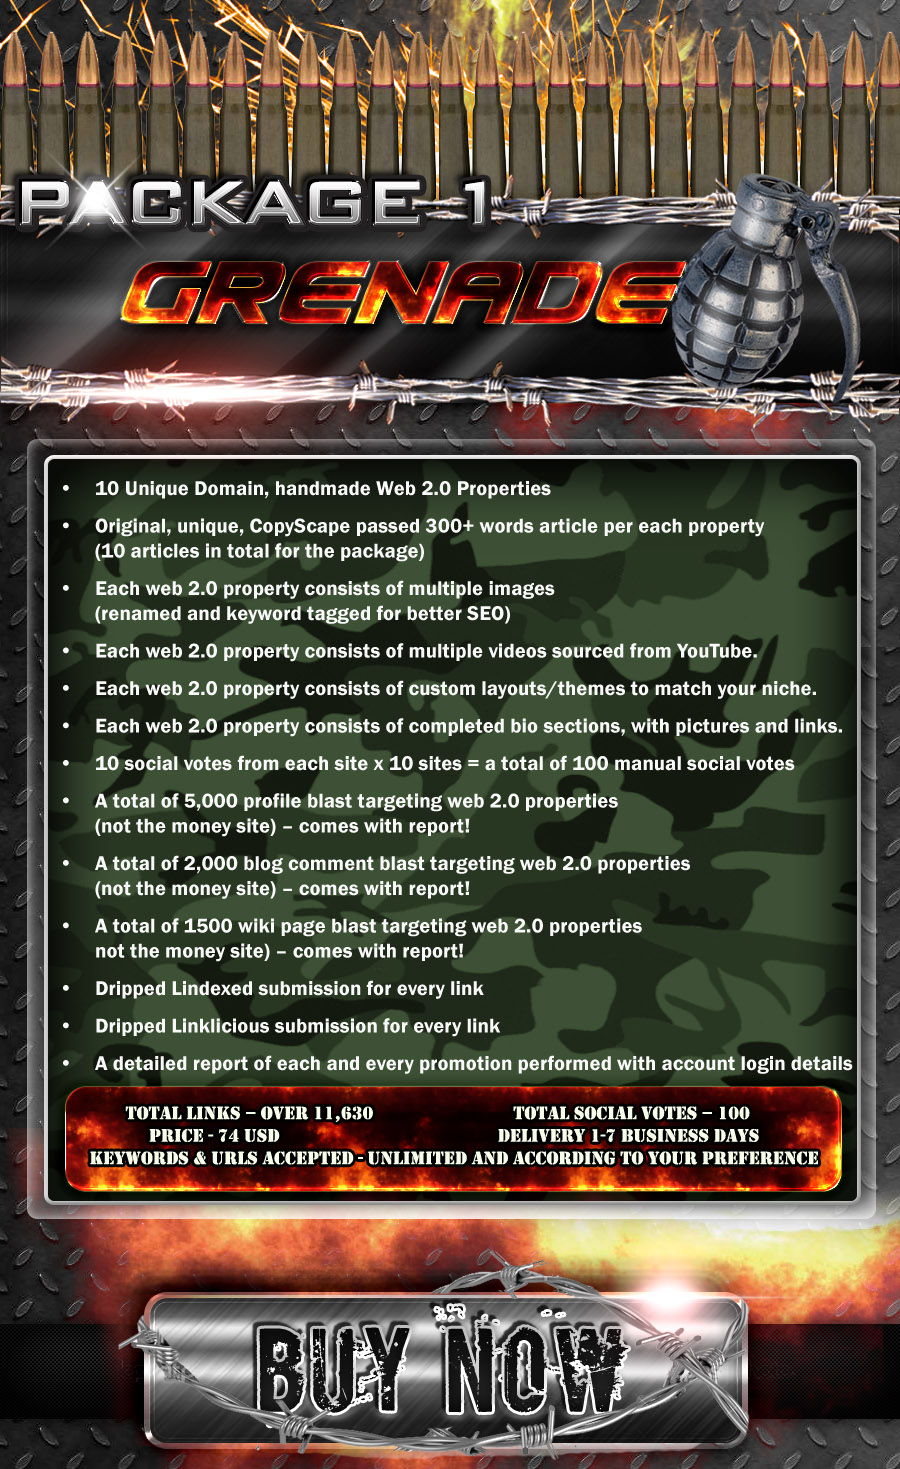 Google Frontier 2.0 Platinum - Package #1 - Grenade